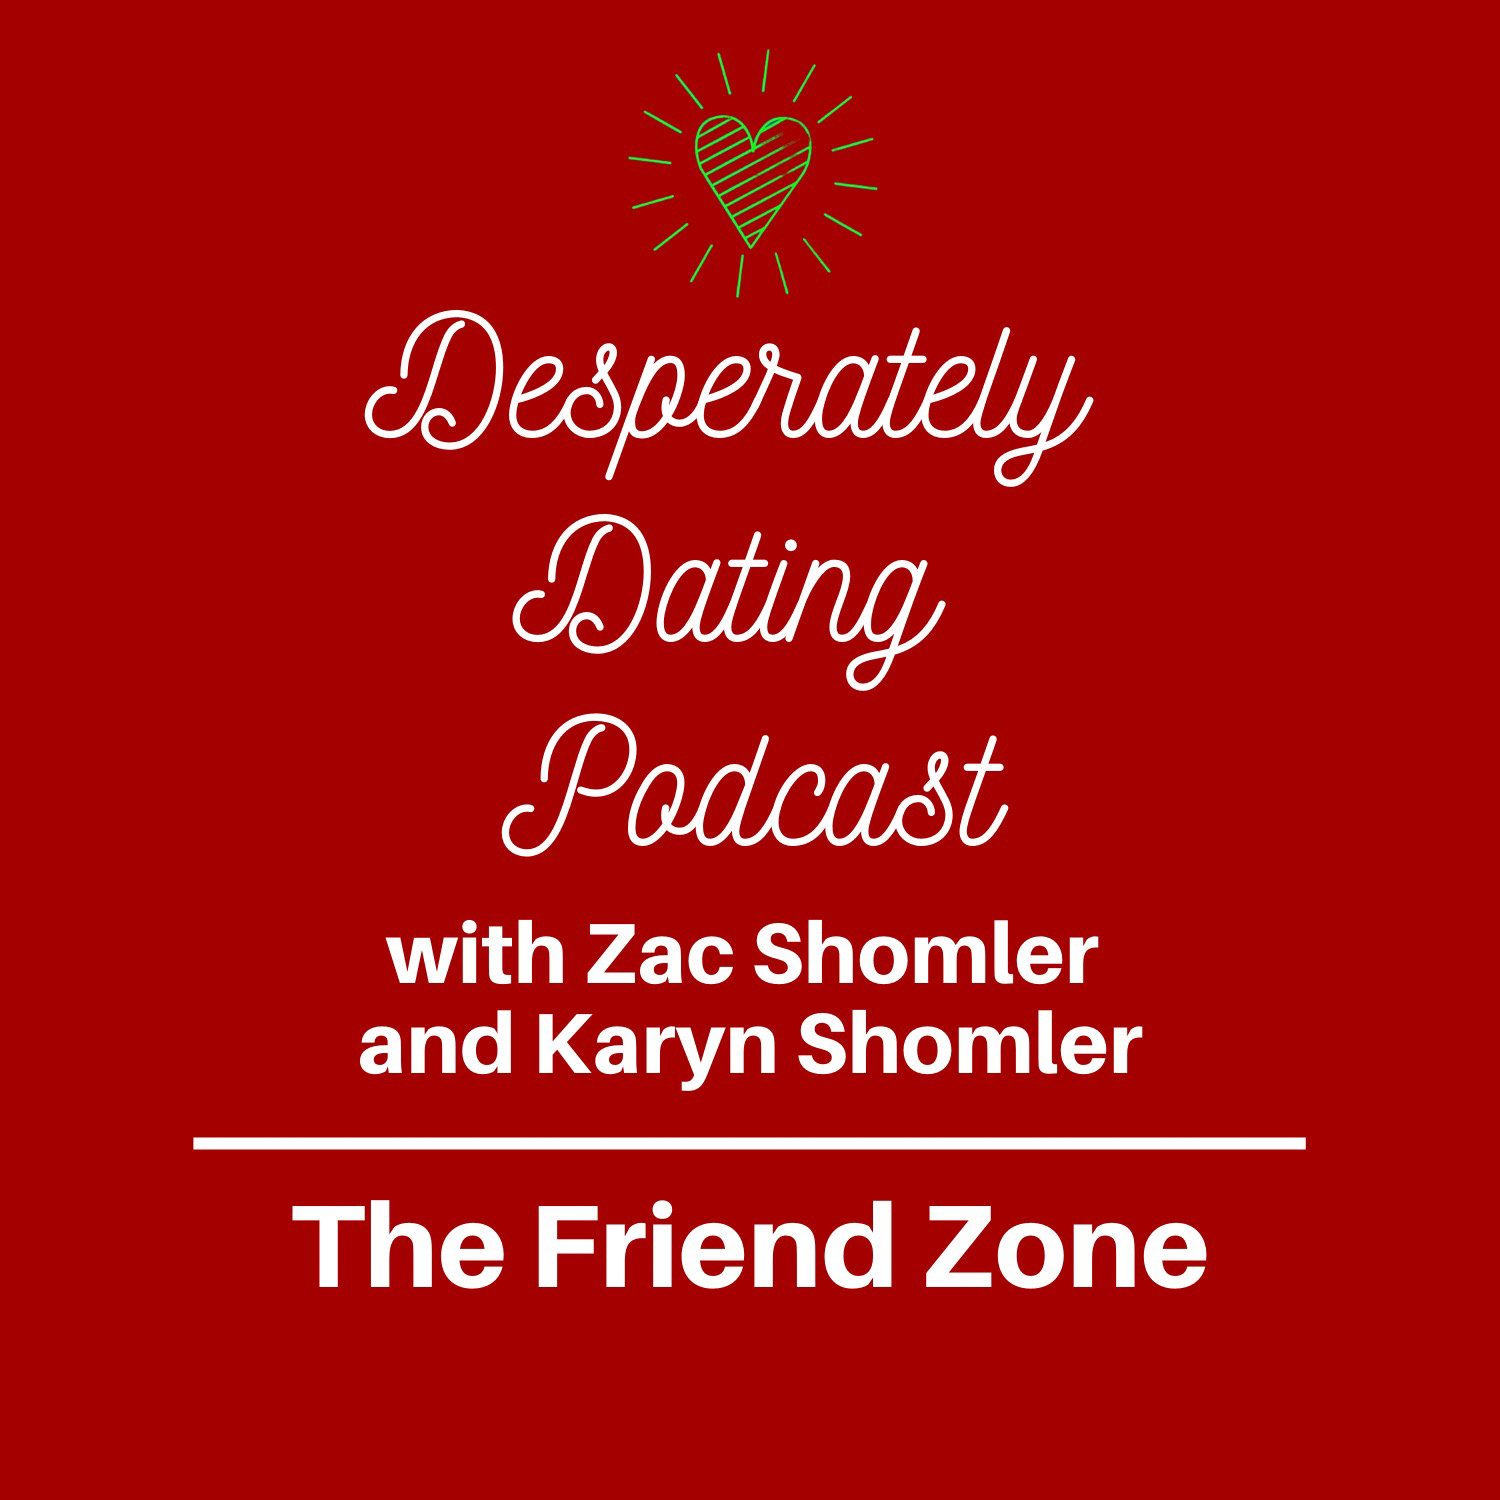 The Friend Zone - Desperately Dating Podcast Episode 8 Karyn Shomler and Zac Shomler